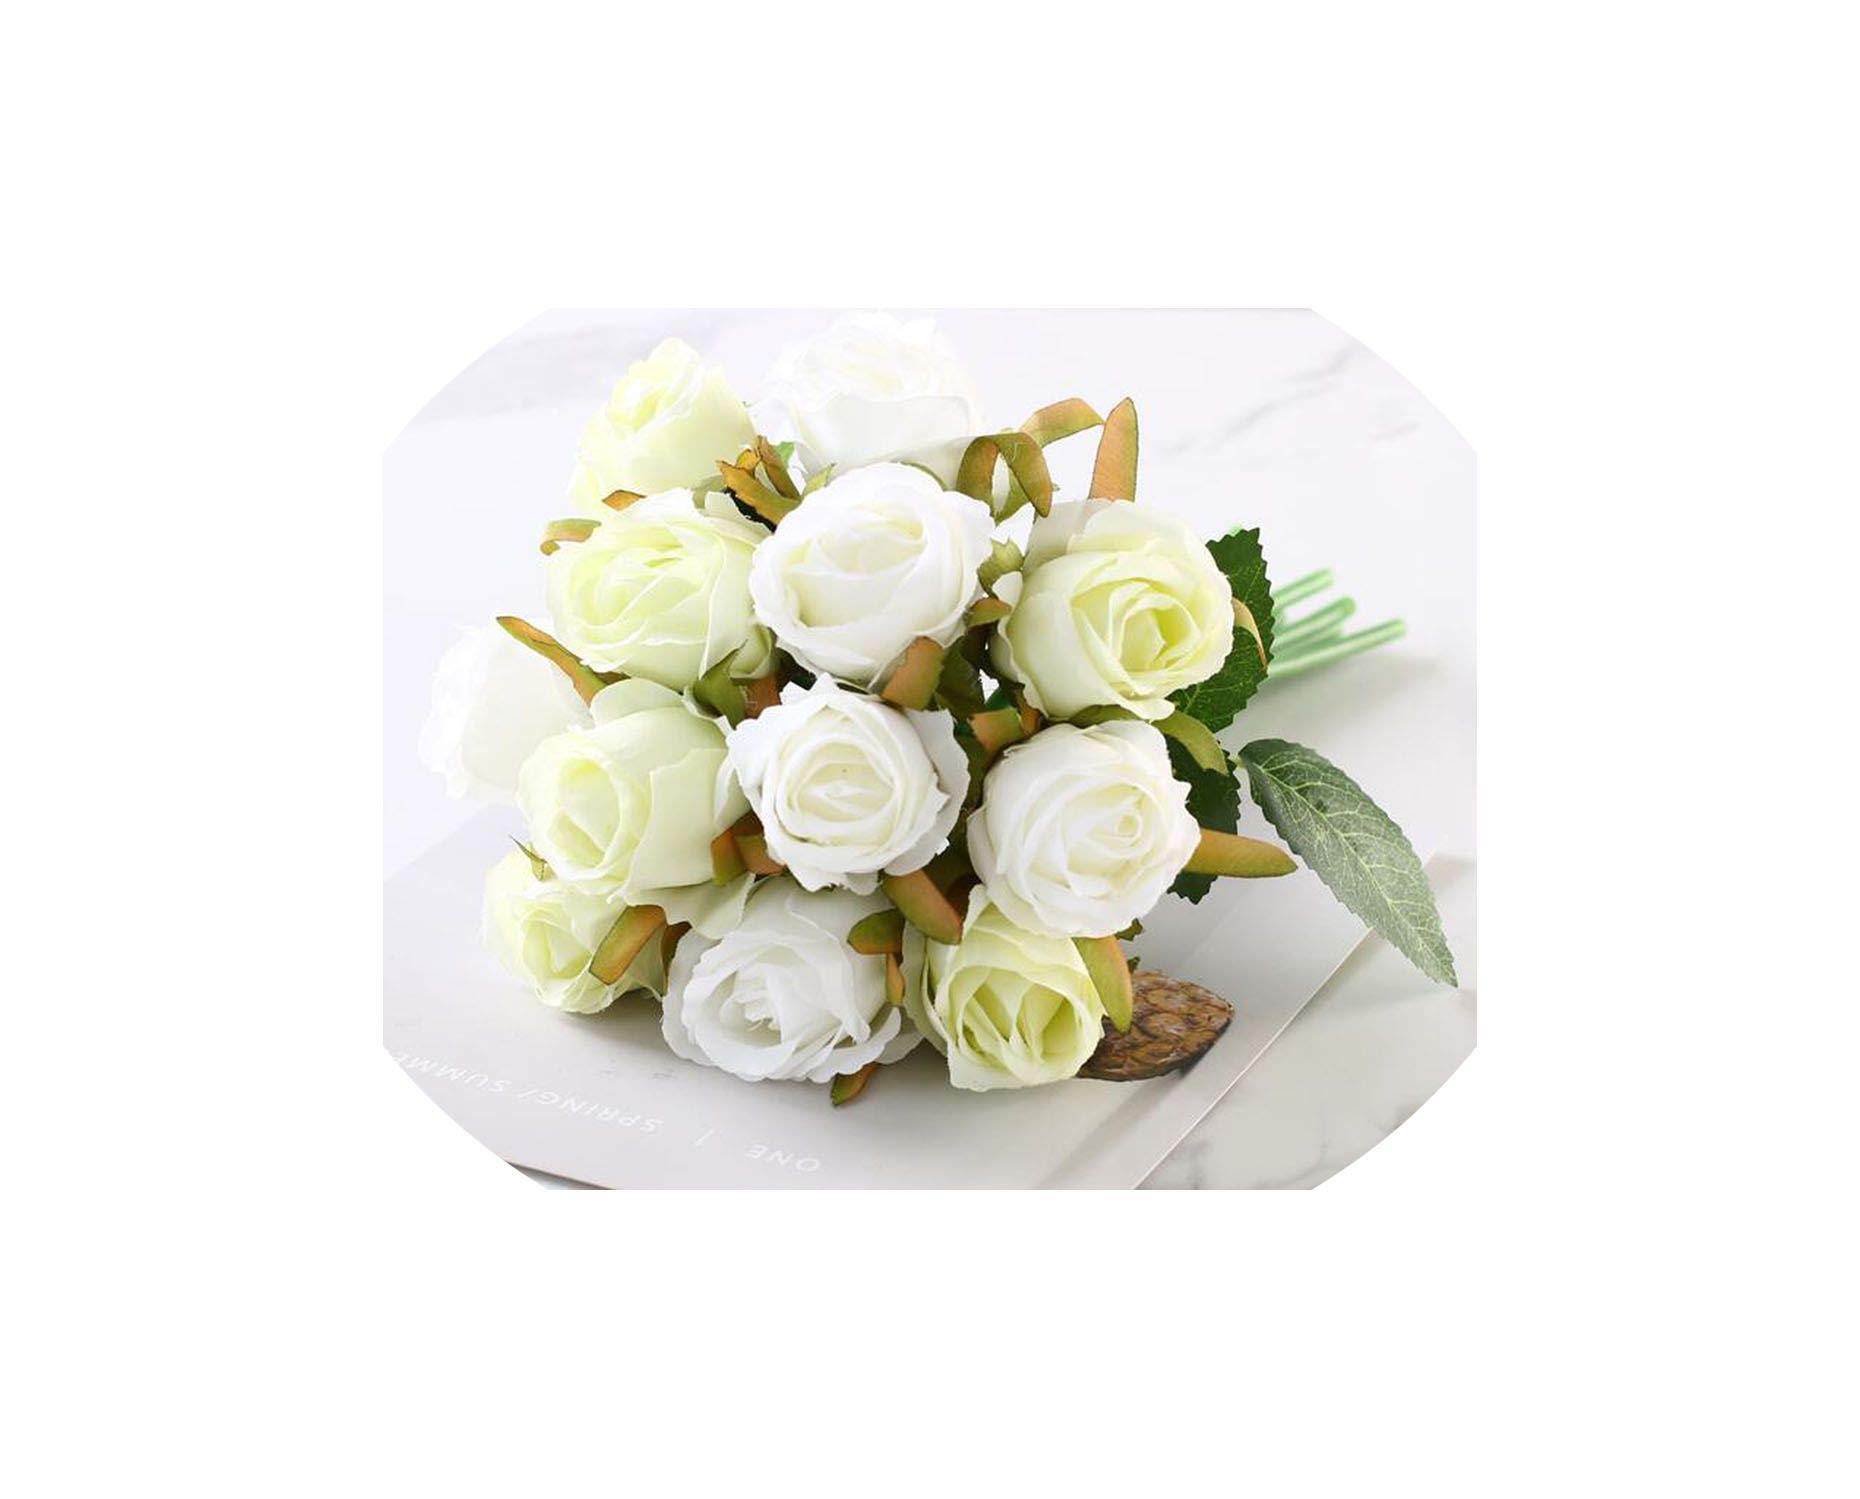 12pcs/Lots Artificial Rose Flowers Wedding Bouquet Silk Rose Flowers for Home Party Decoration Wedding Fake Flower,White Green